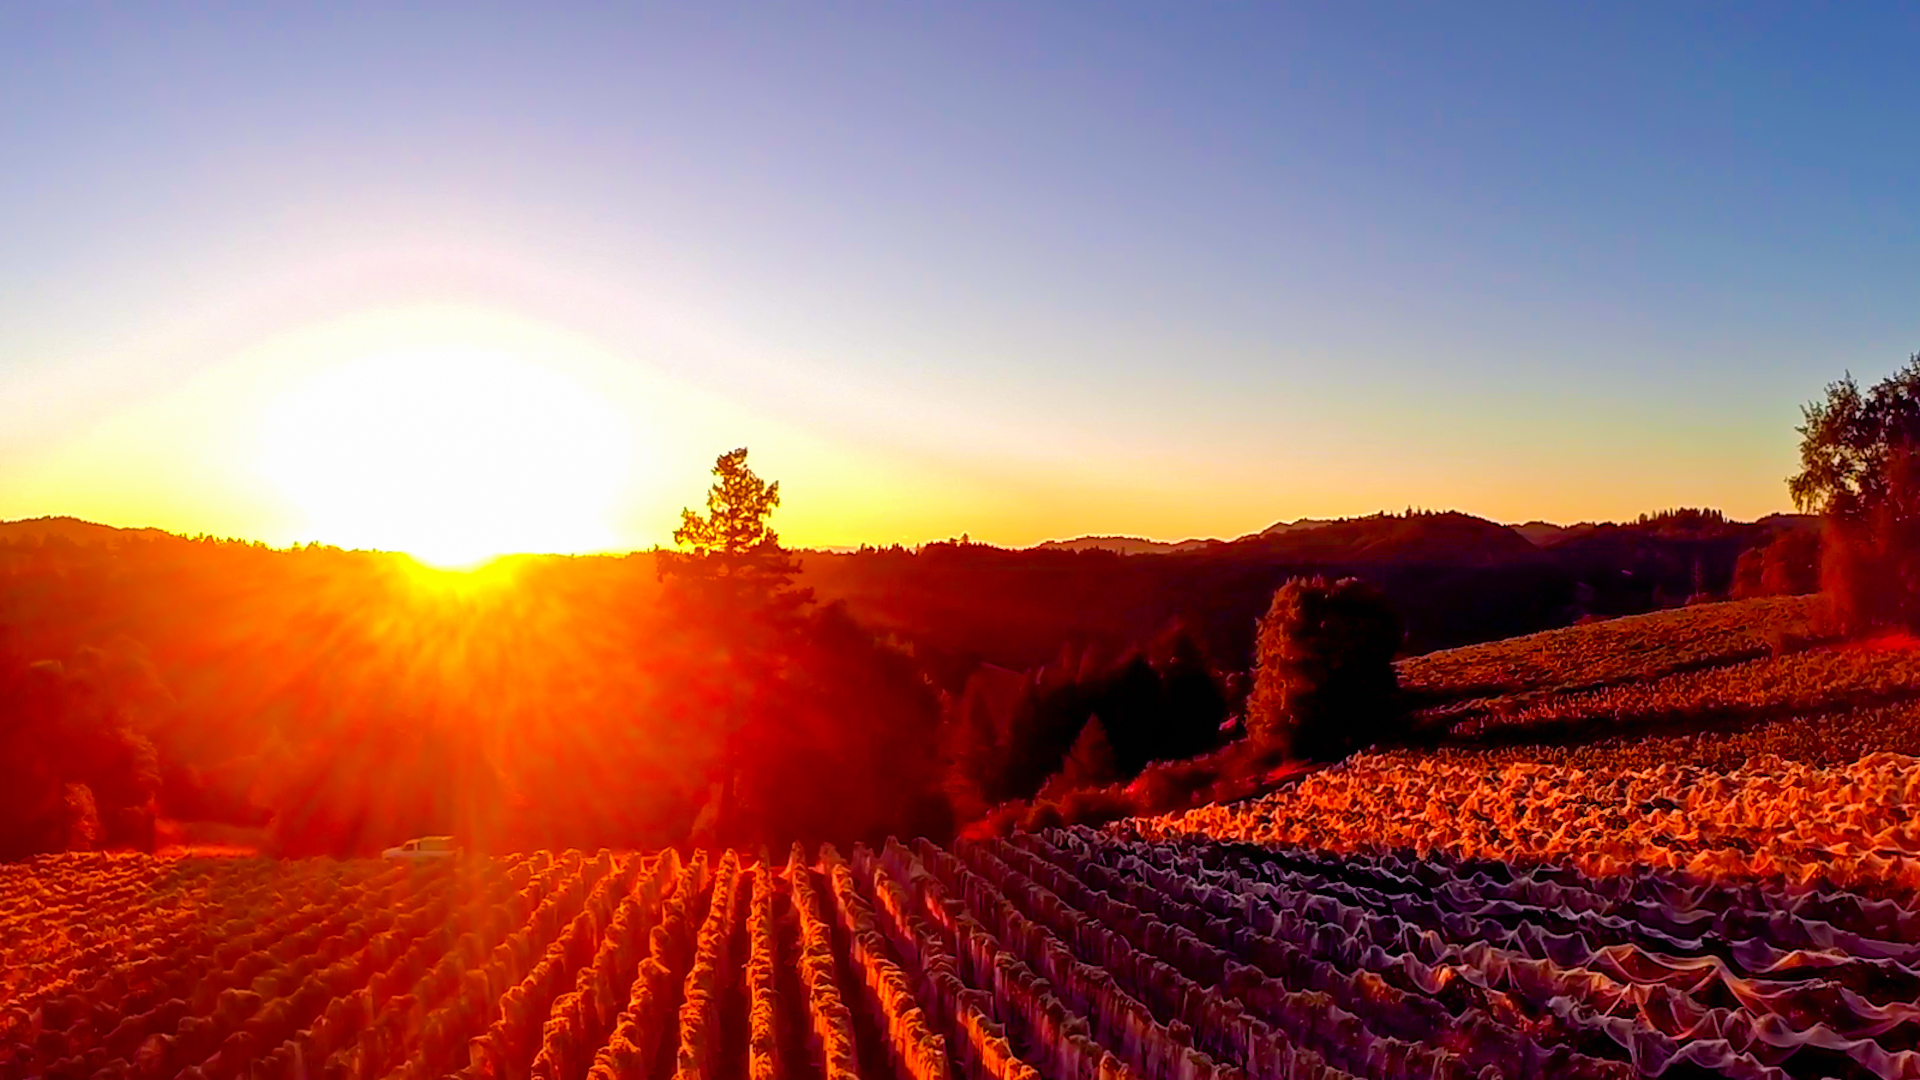 Sunrise Drone over vineyard